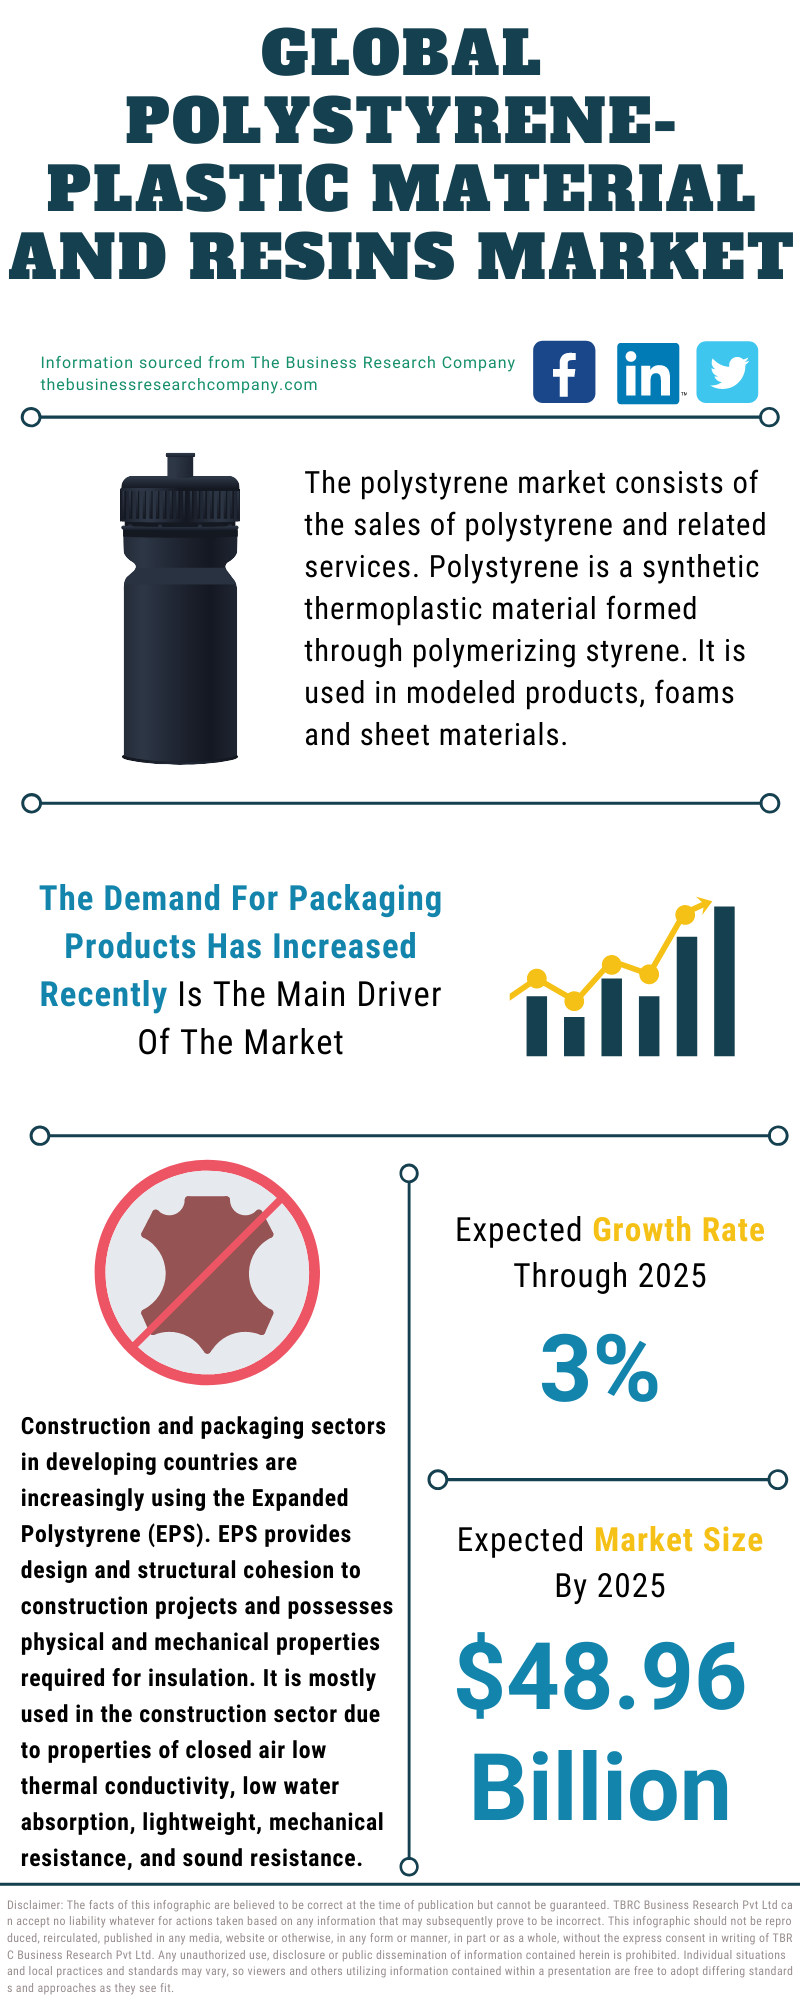 Polystyrene-Plastic Material And Resins Market